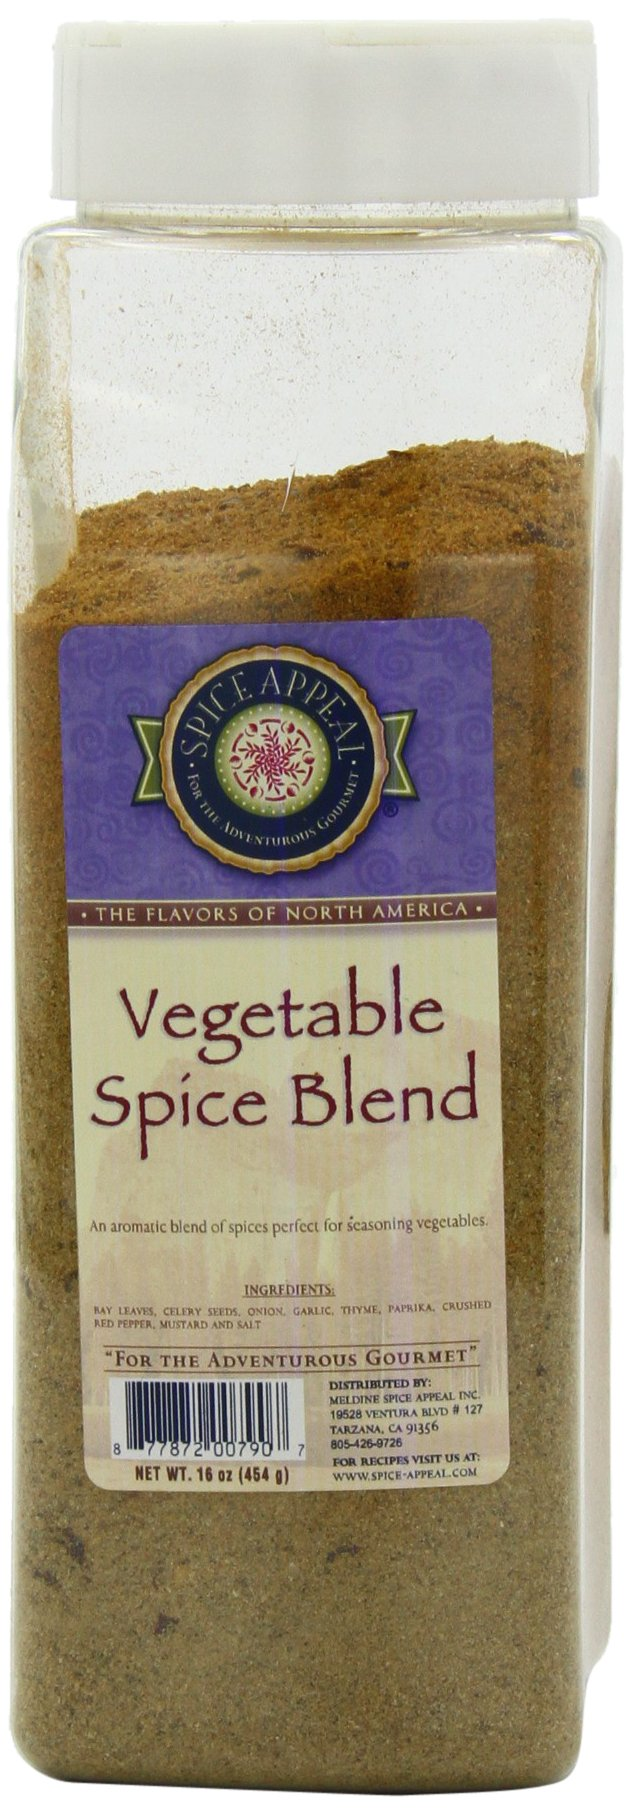 Spice Appeal Vegetable Spice Blend, 16 Ounce